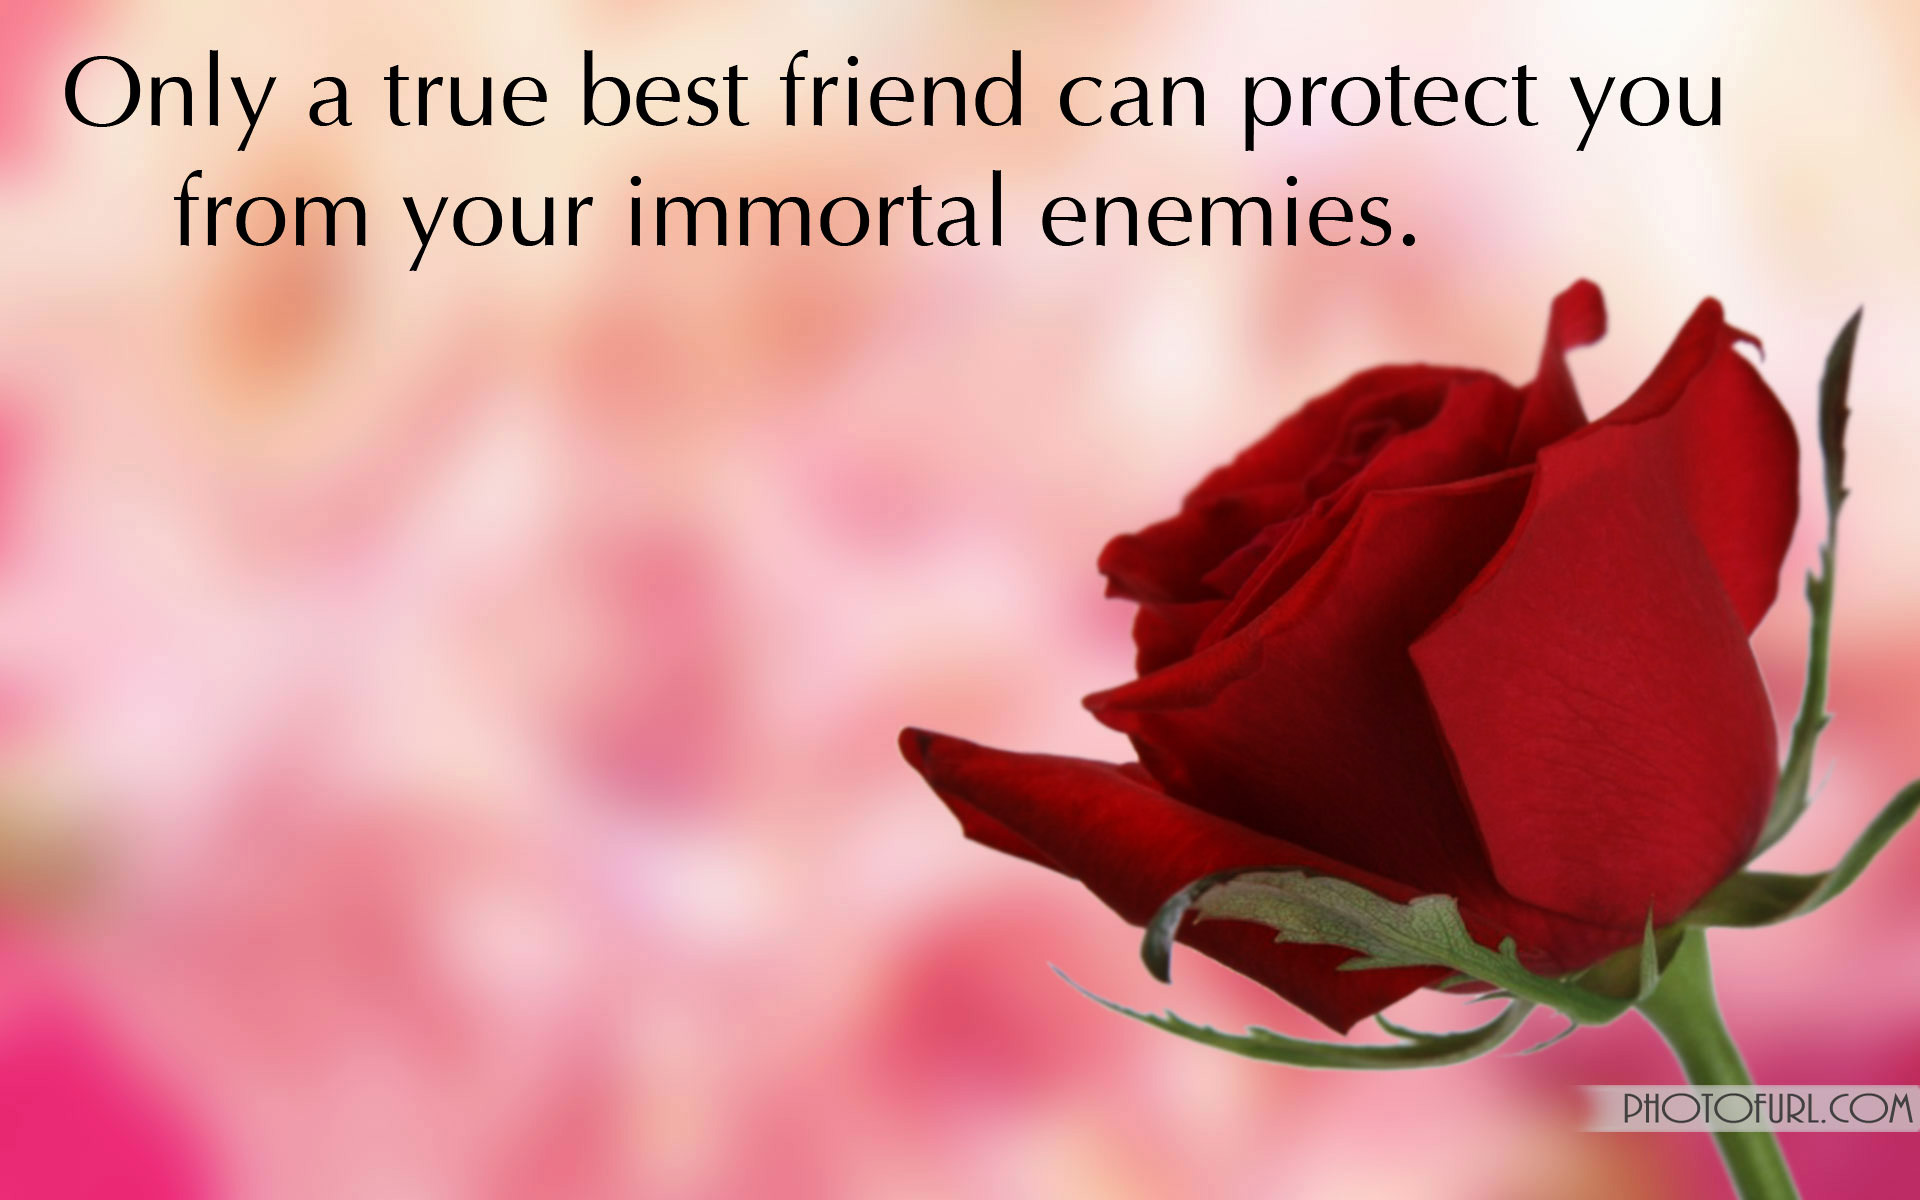 Friendship And Love Wallpapers